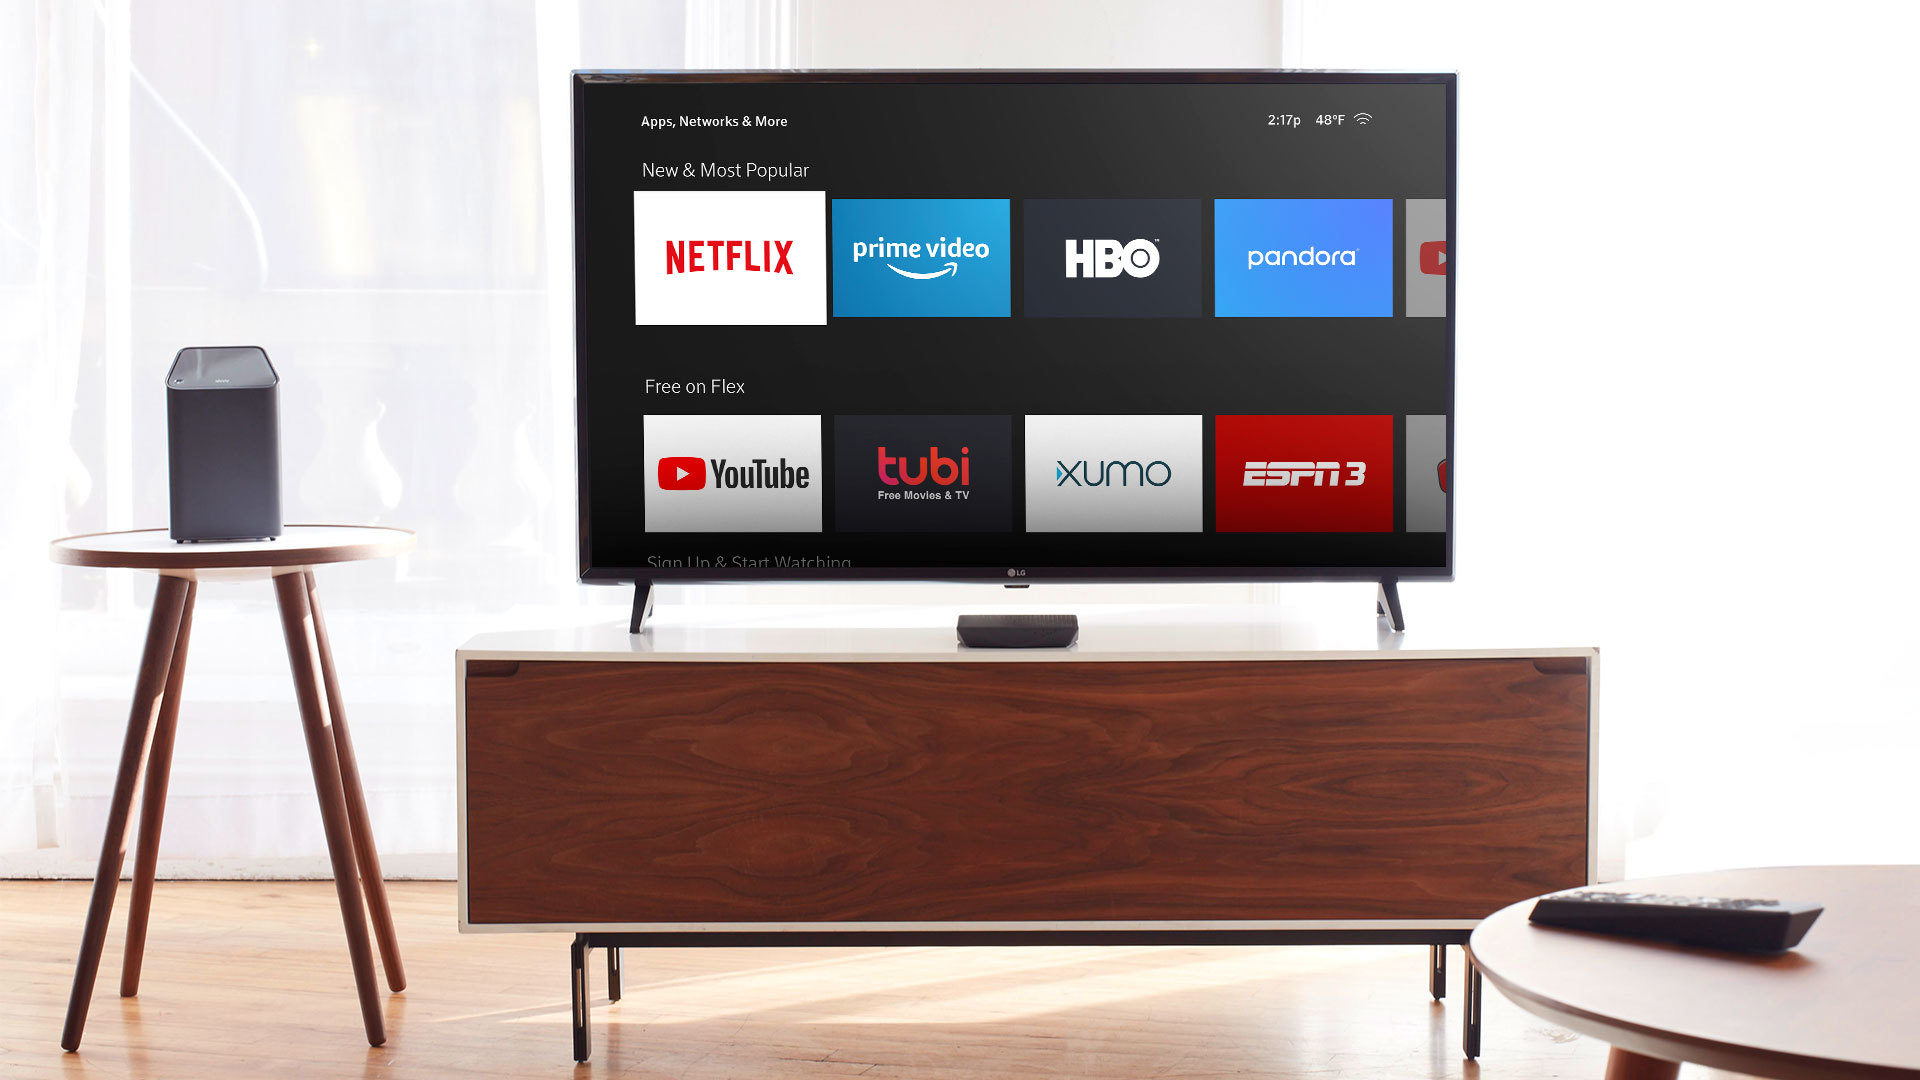 Comcast confirms interest in putting X1 on smart TVs | FierceVideo